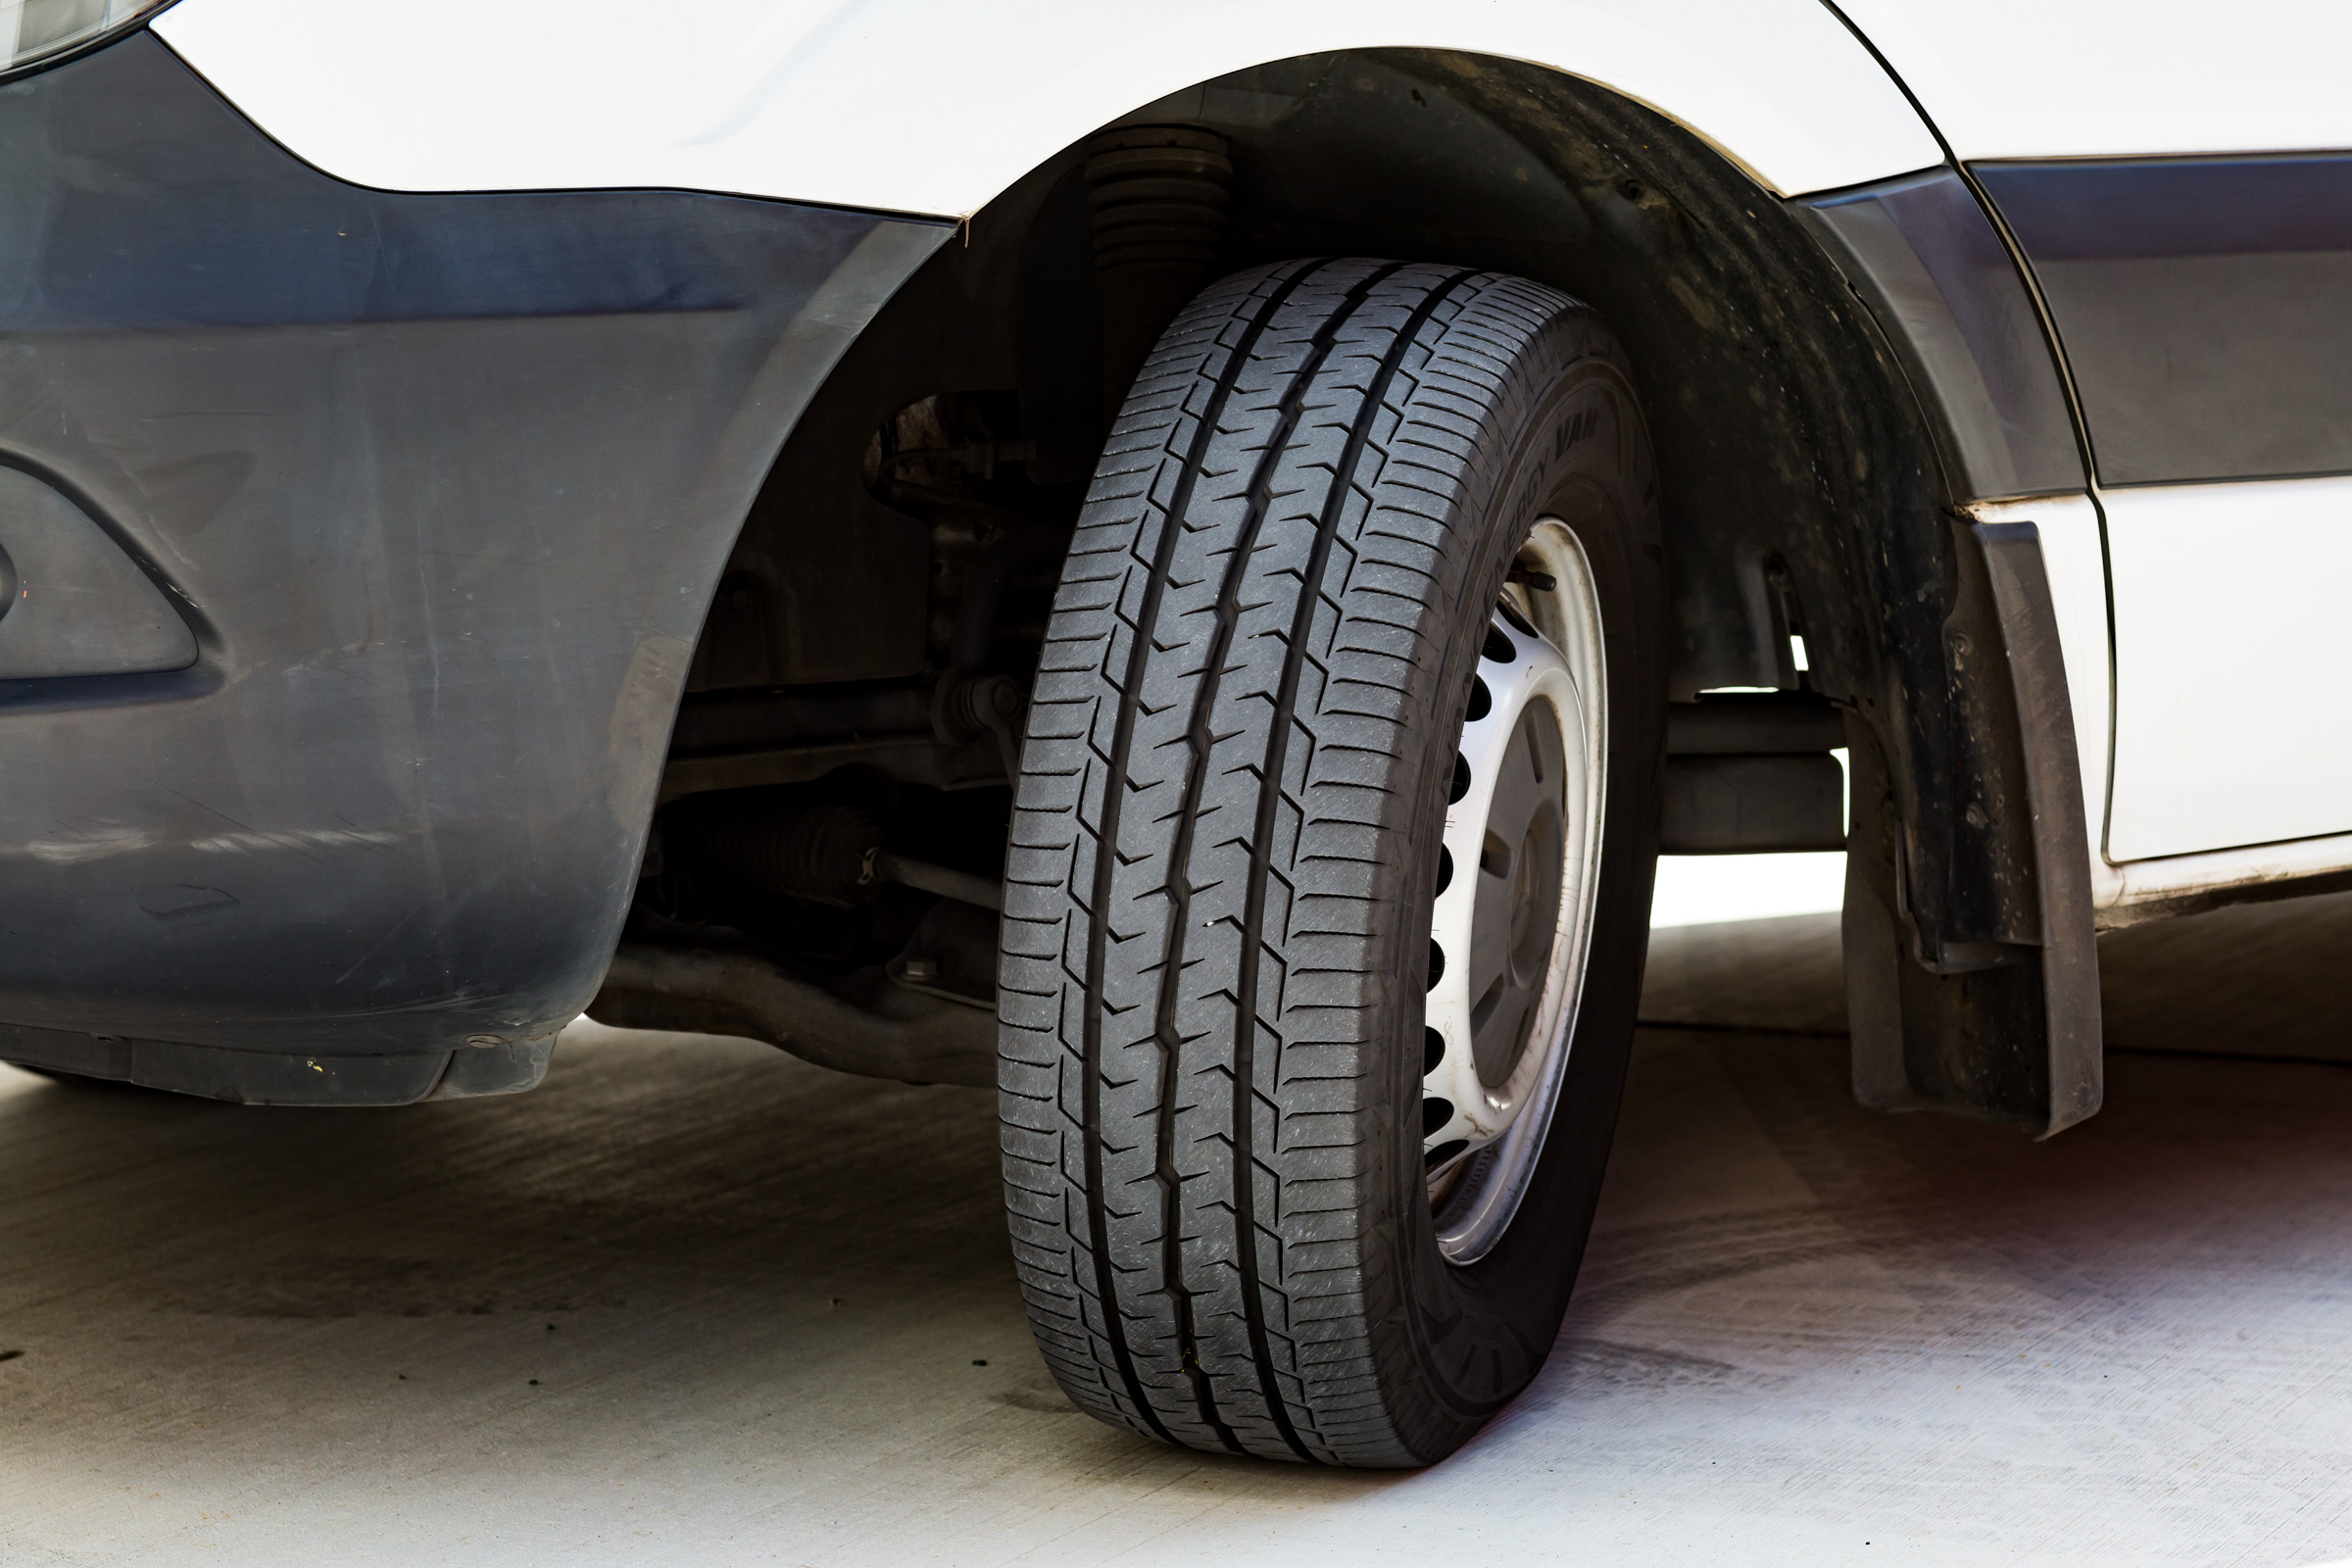 The recent release of the NanoEnergy Van tyre by Toyo Tires heralds a major redesign of premium tyre options, specifically for owners of vans, utes, people movers, motorhomes, caravans and trailers.